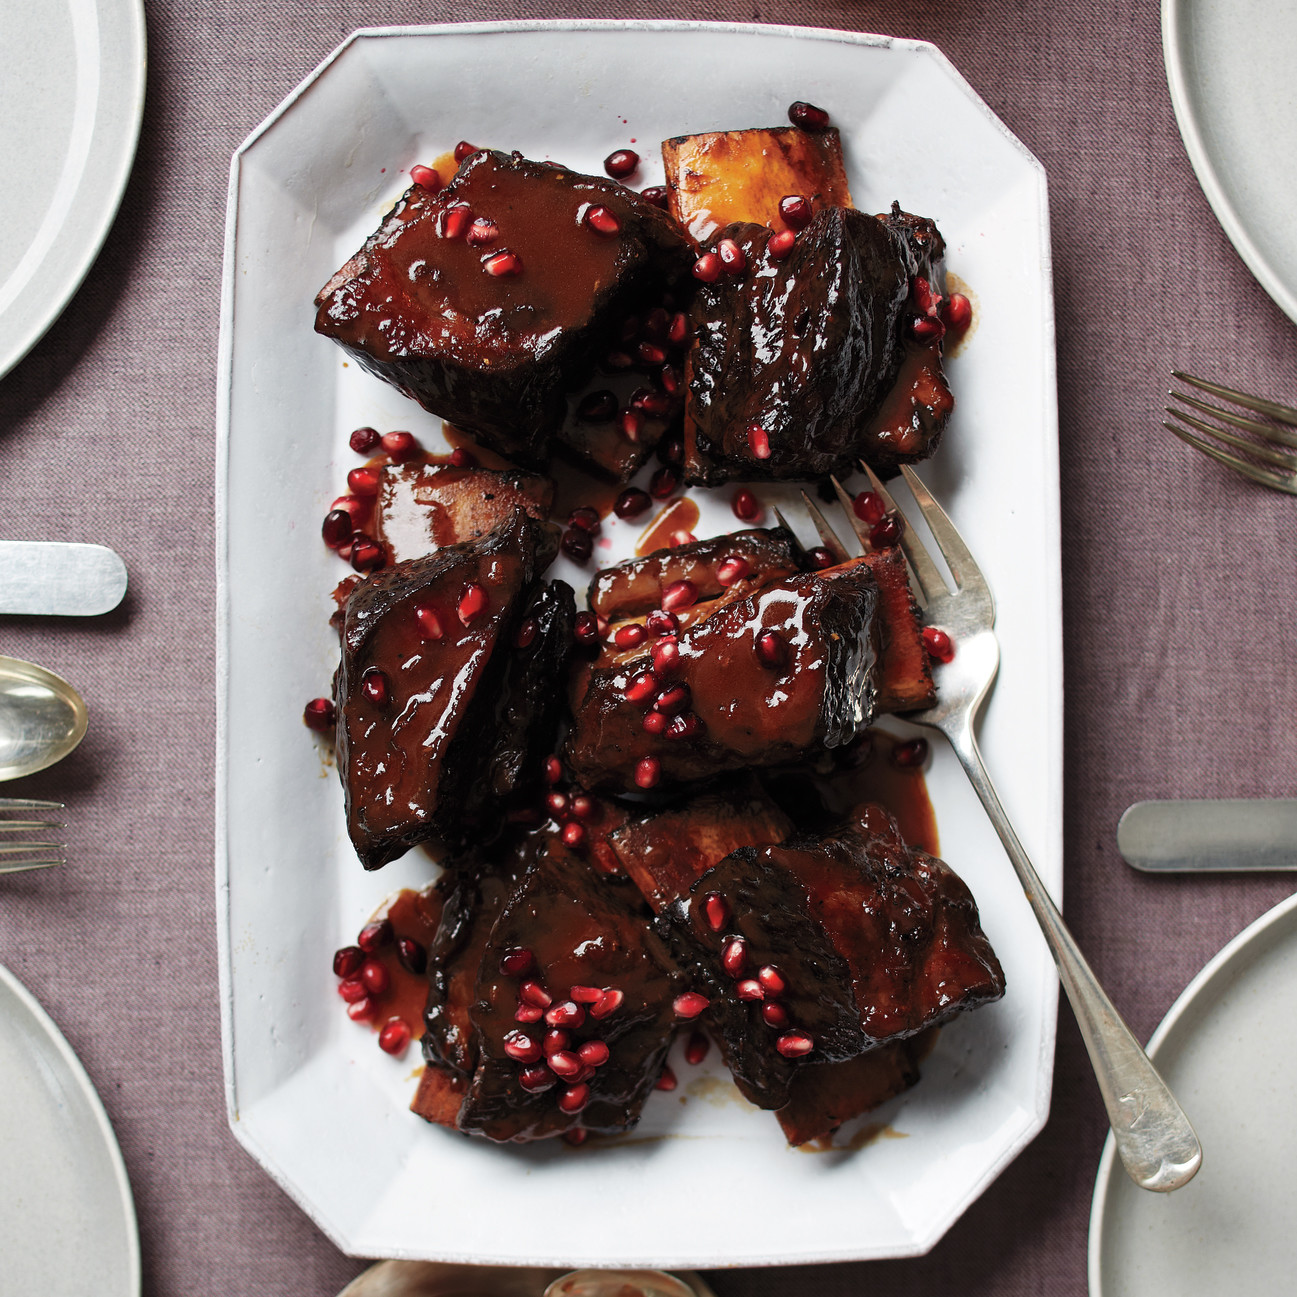 PomegranateBraised Short Ribs